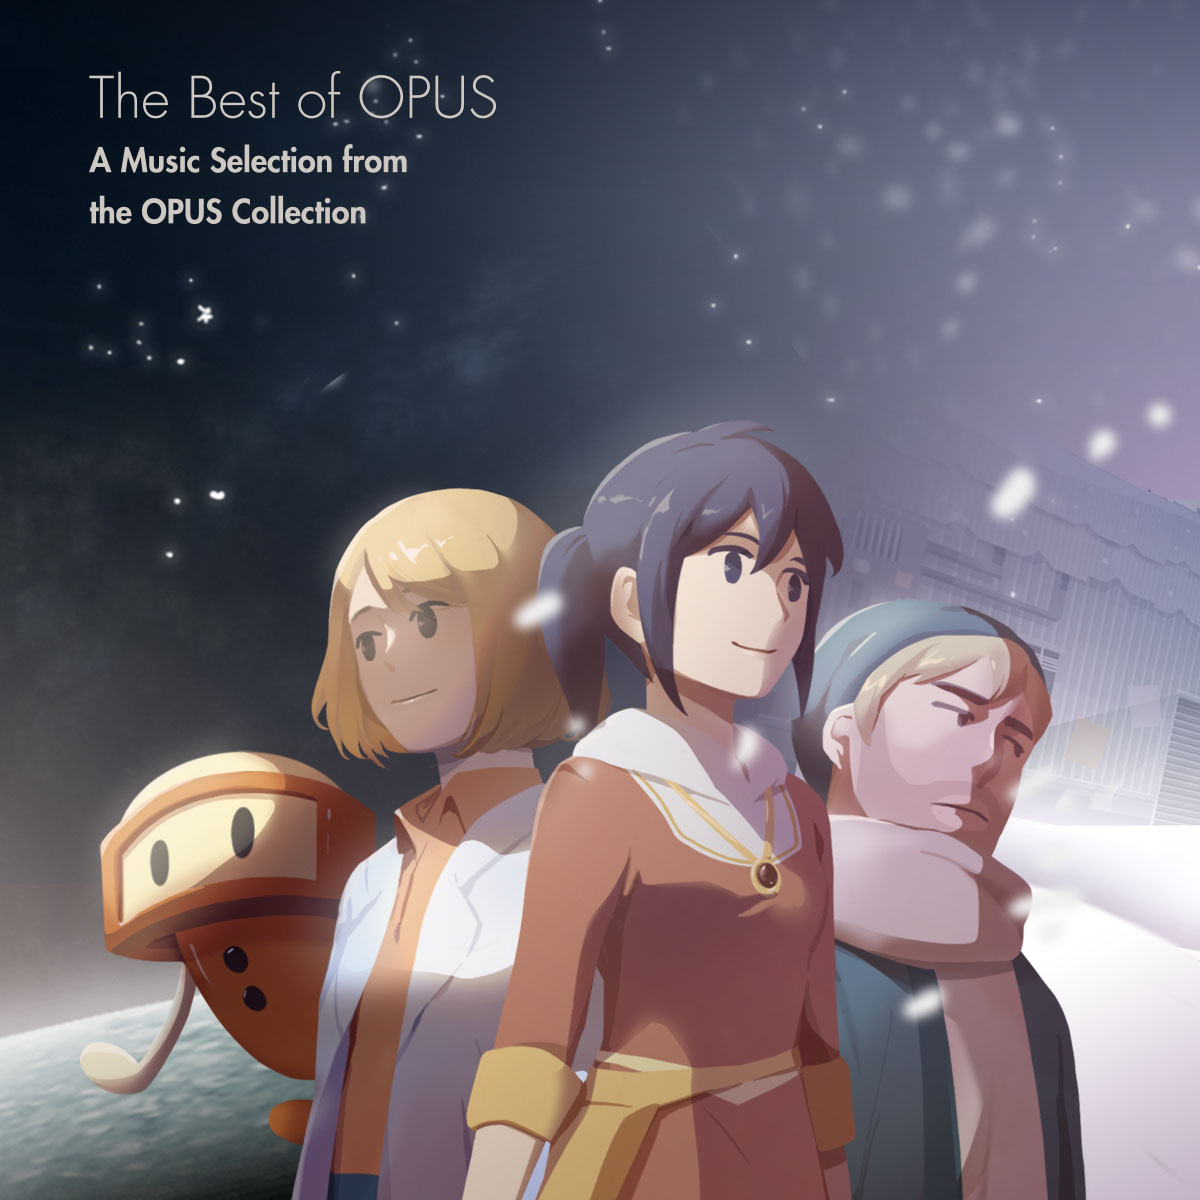 The Best of OPUS